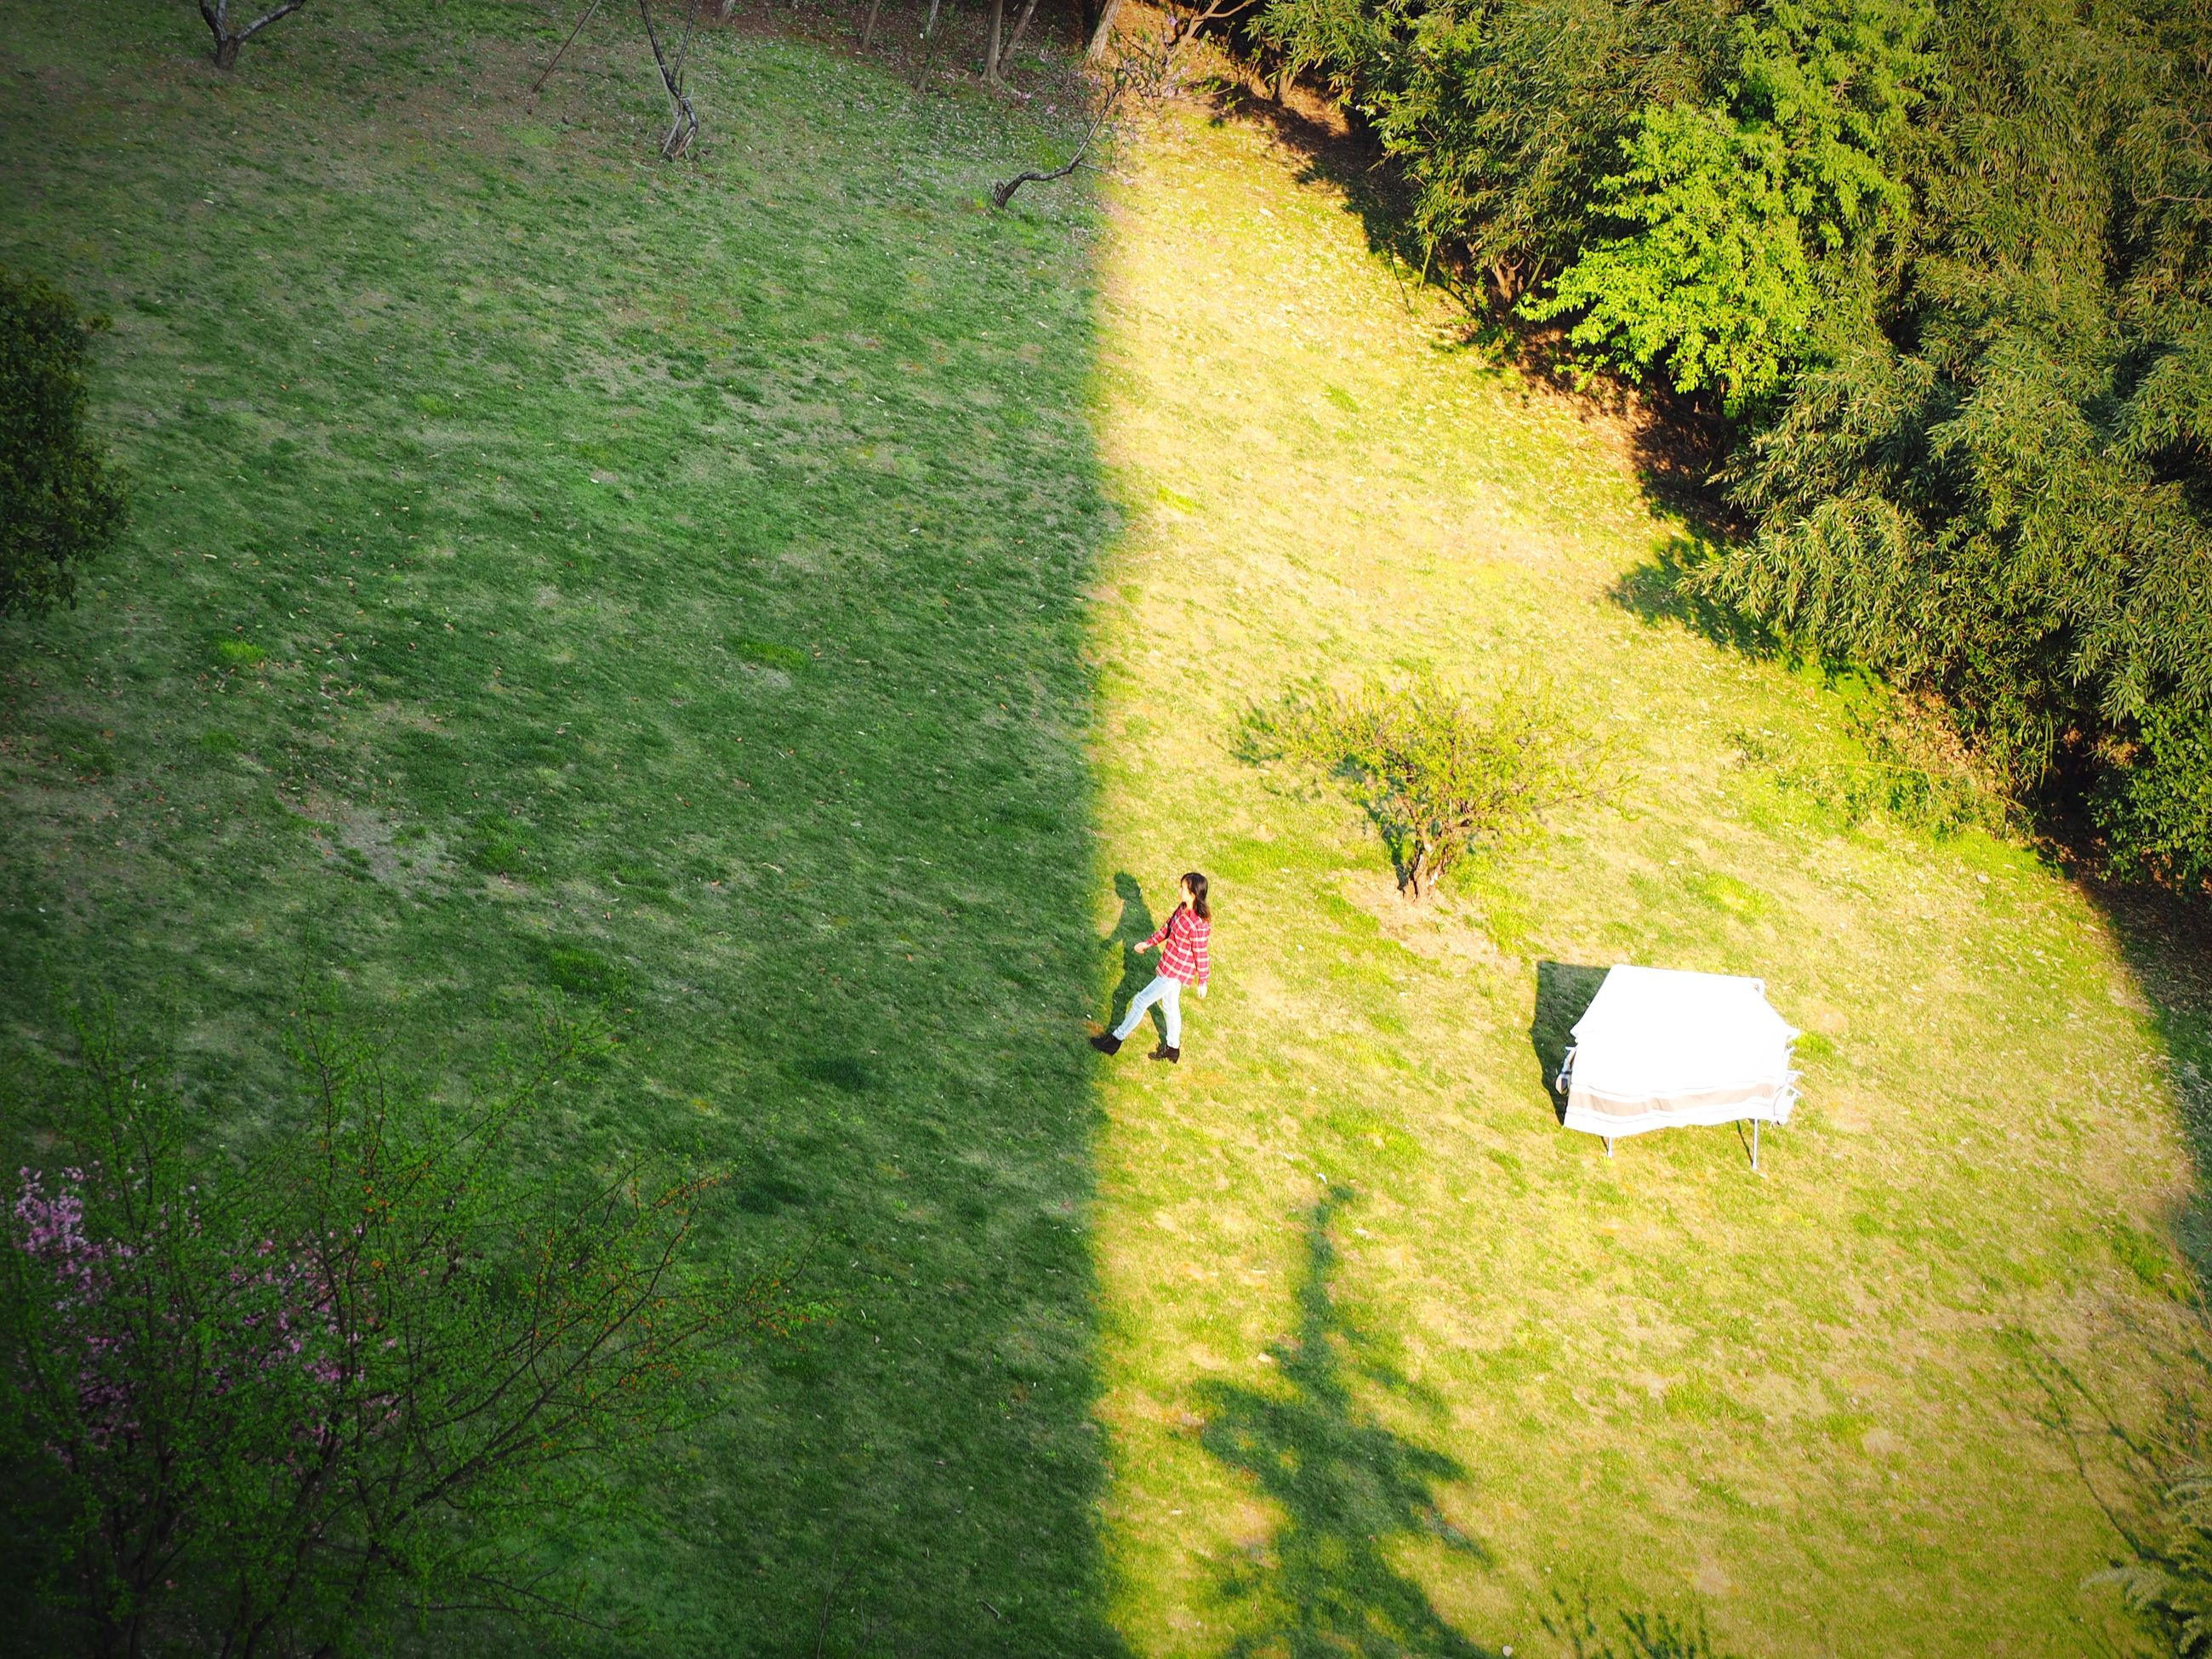 grass, green color, high angle view, leisure activity, lifestyles, grassy, men, field, shadow, growth, person, sunlight, nature, plant, day, tree, tranquility